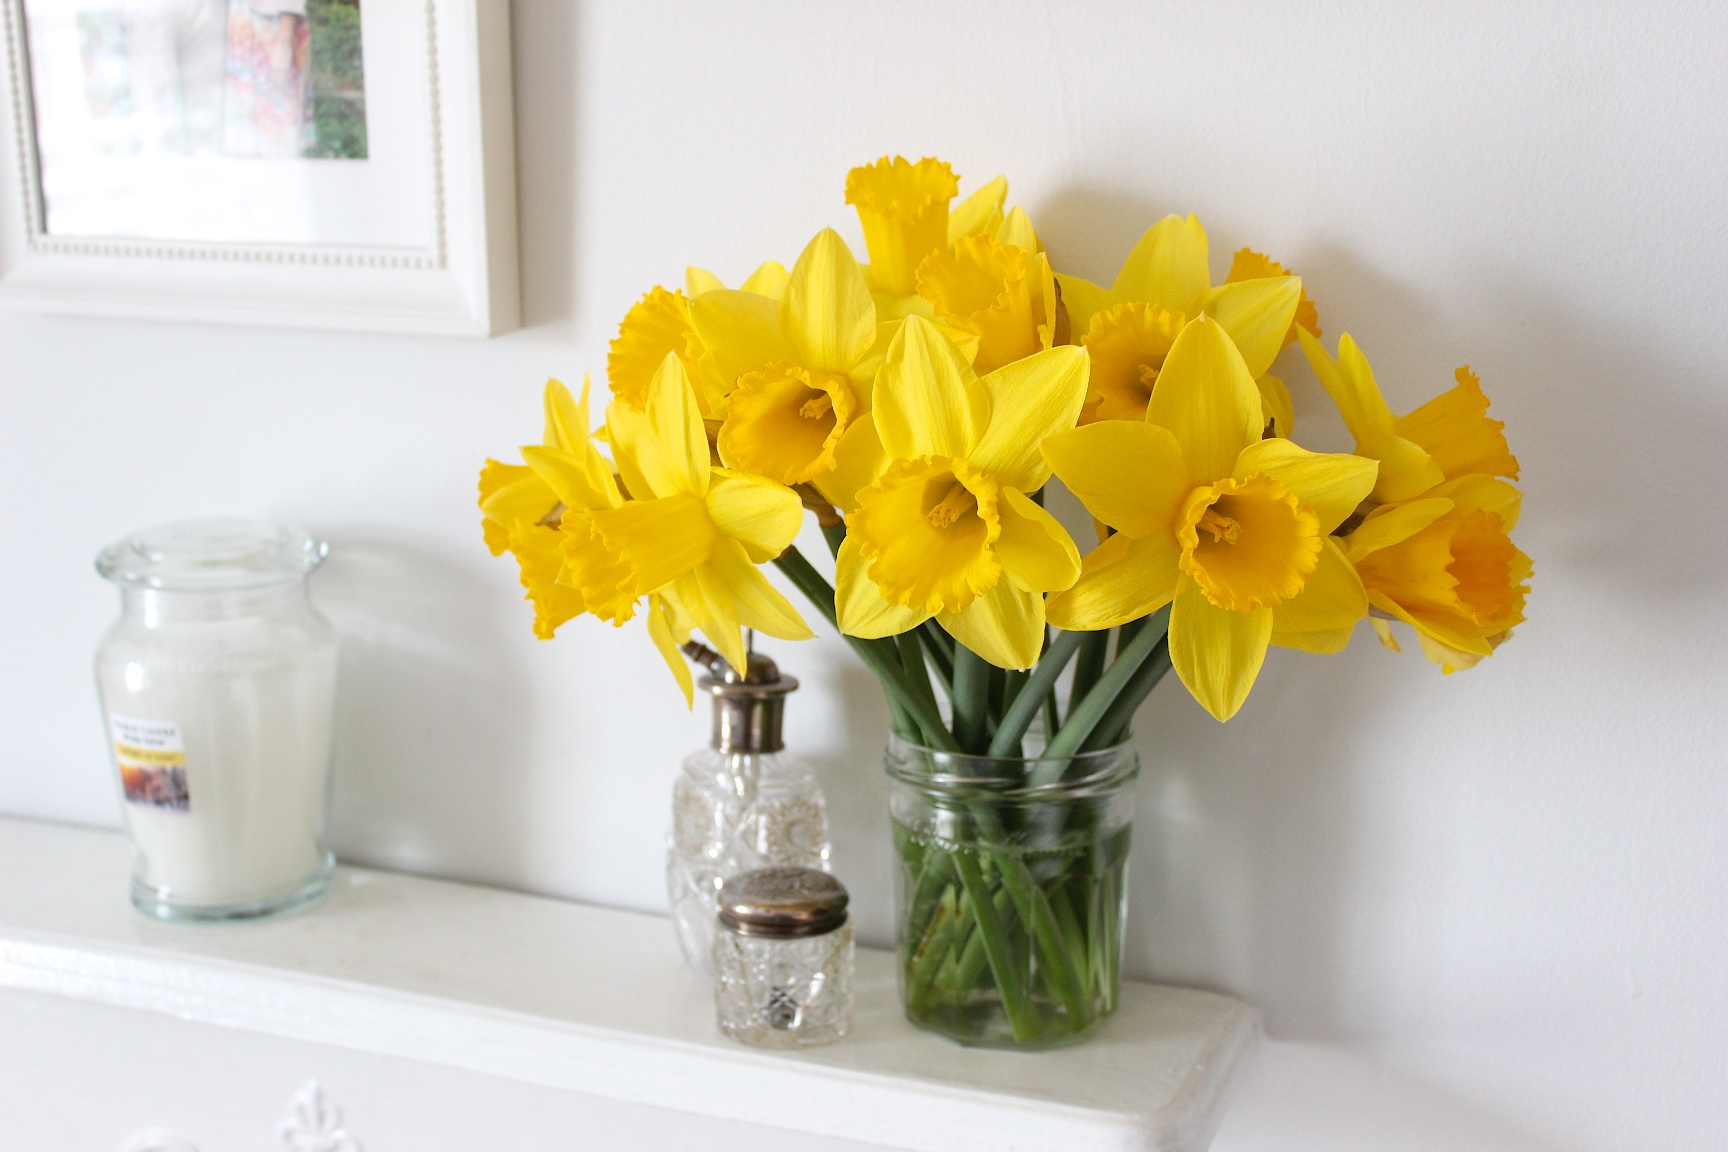 Daffodils Jam Jar Mantle